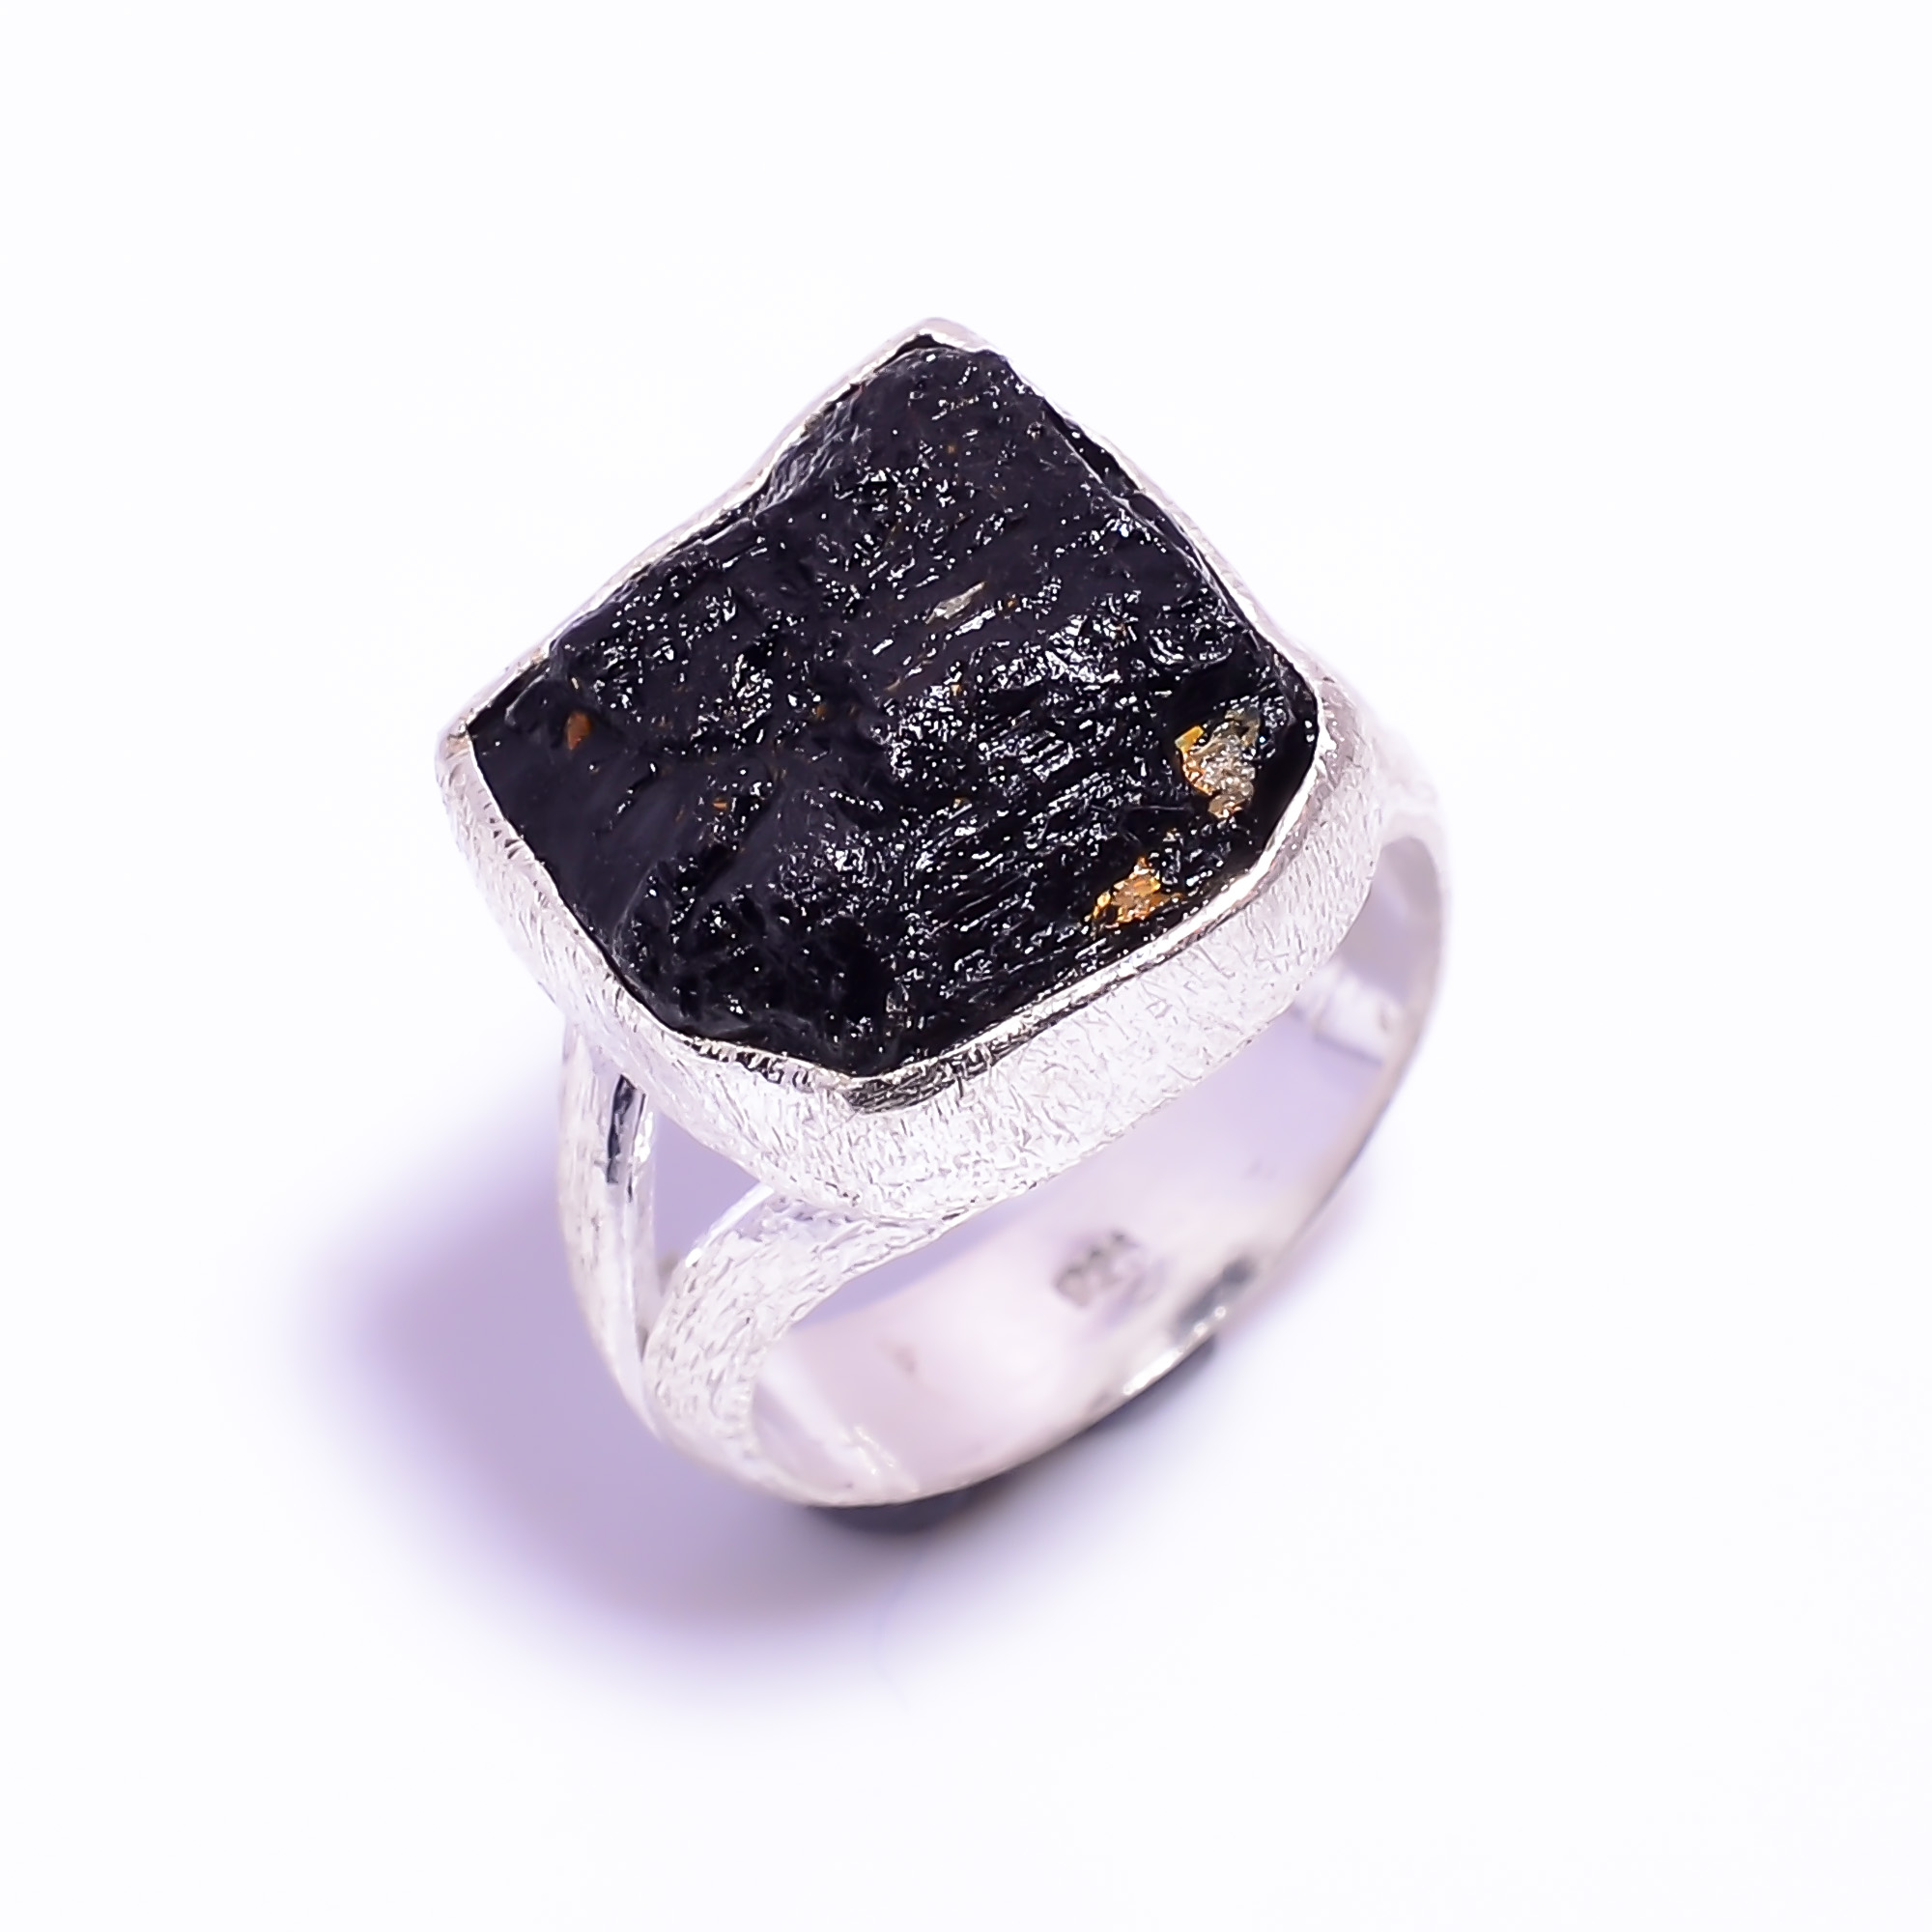 Raw Black Tourmaline Gemstone 925 Sterling Silver Ring Size US 6